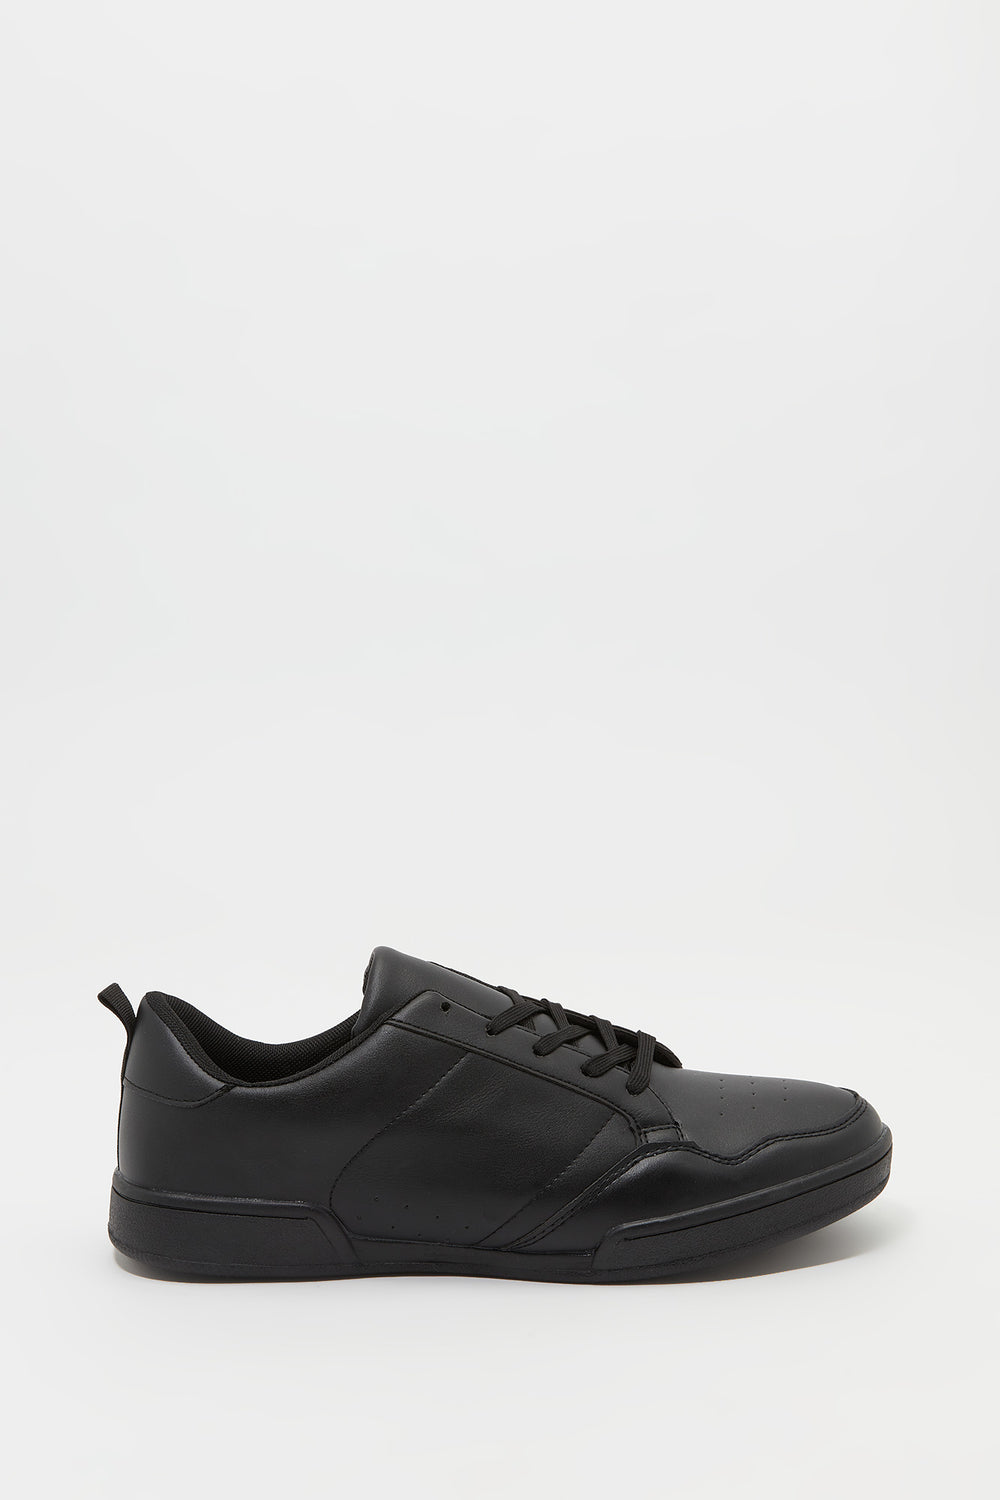 Basic Lace-Up Sneaker Black